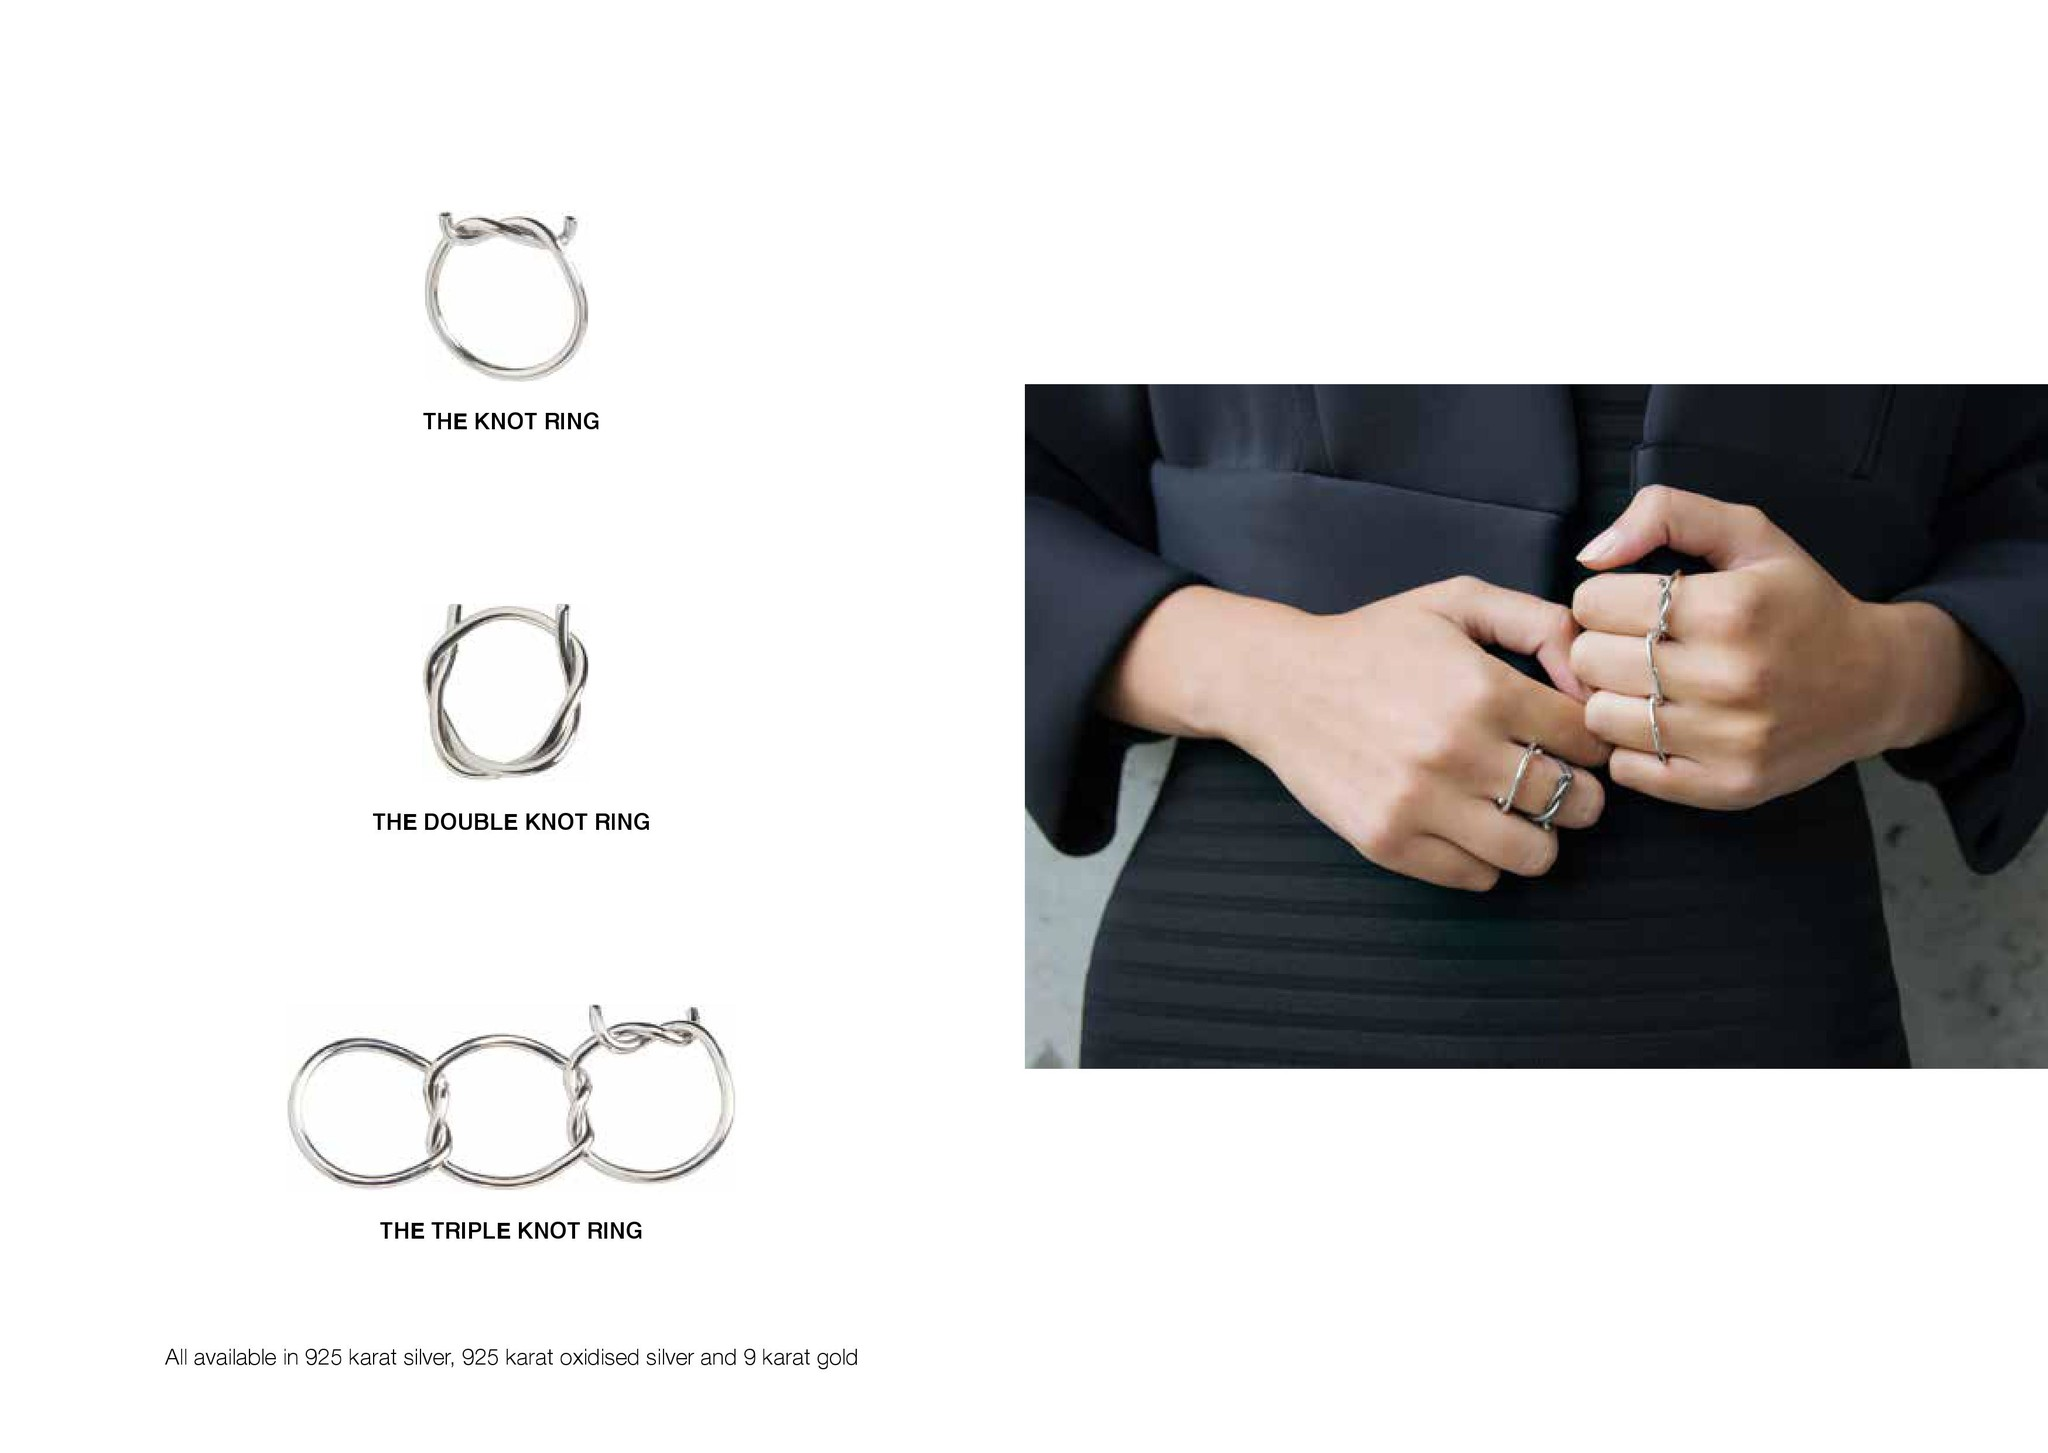 Our Knot rings